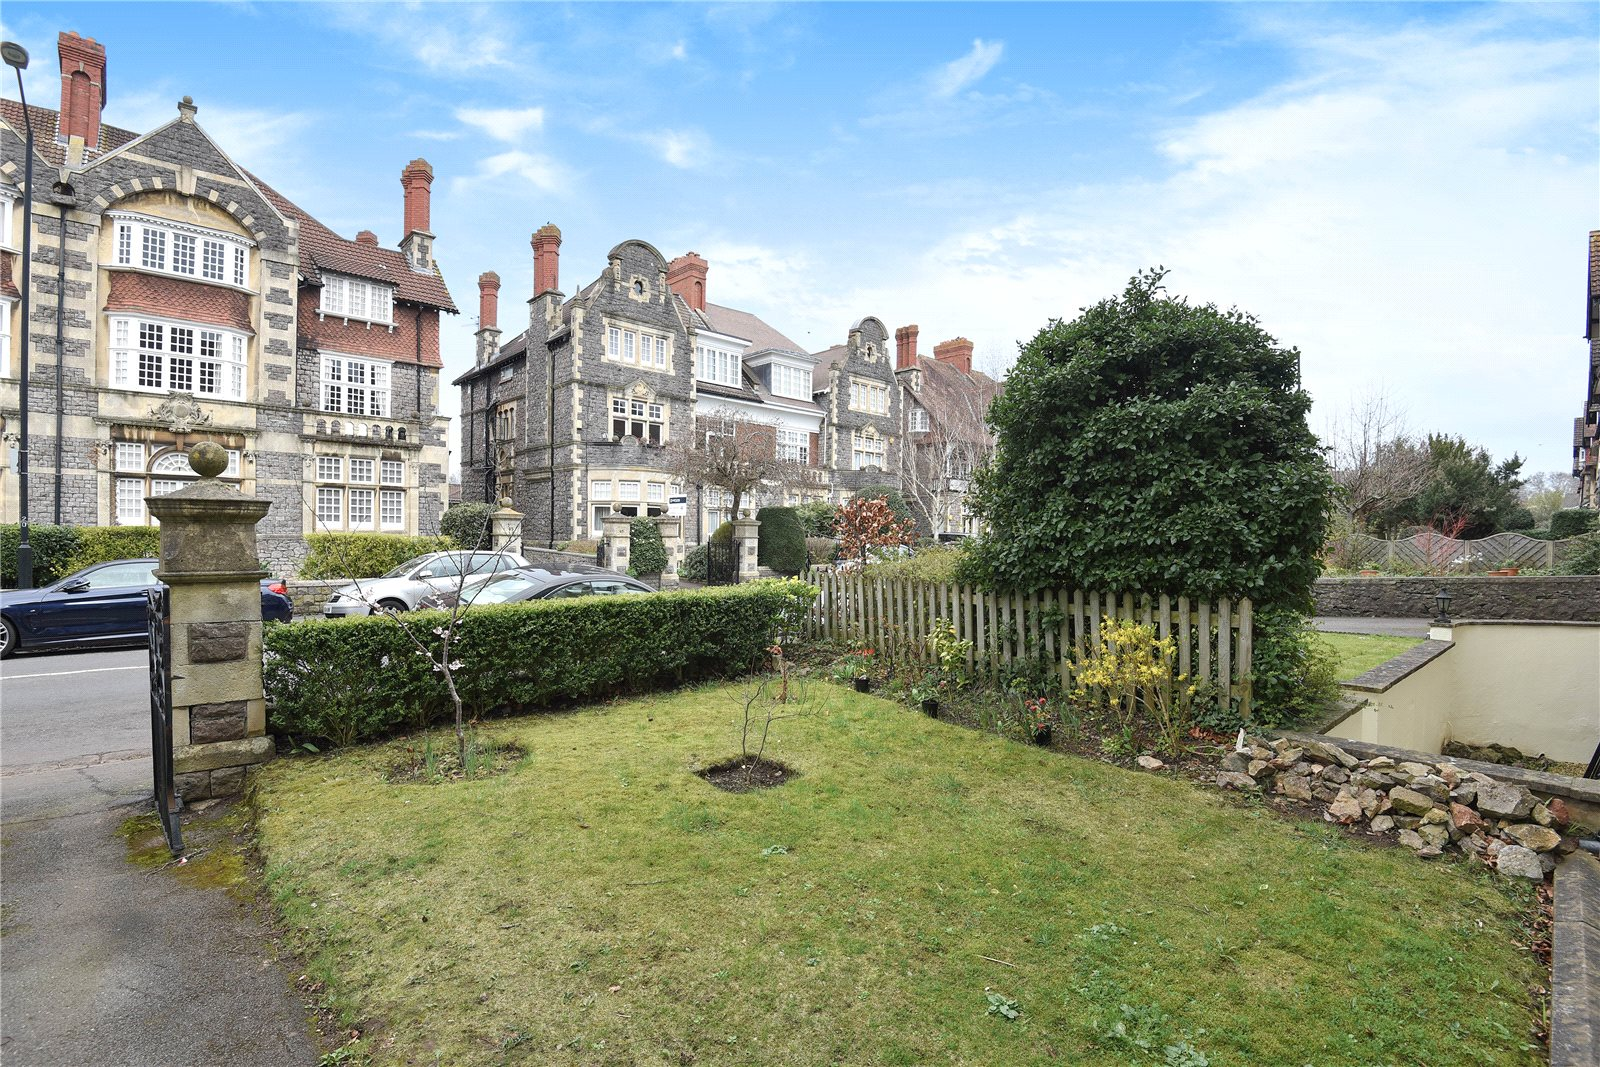 Cj Hole Clifton Old 3 Bedroom Flat For Sale In Downleaze